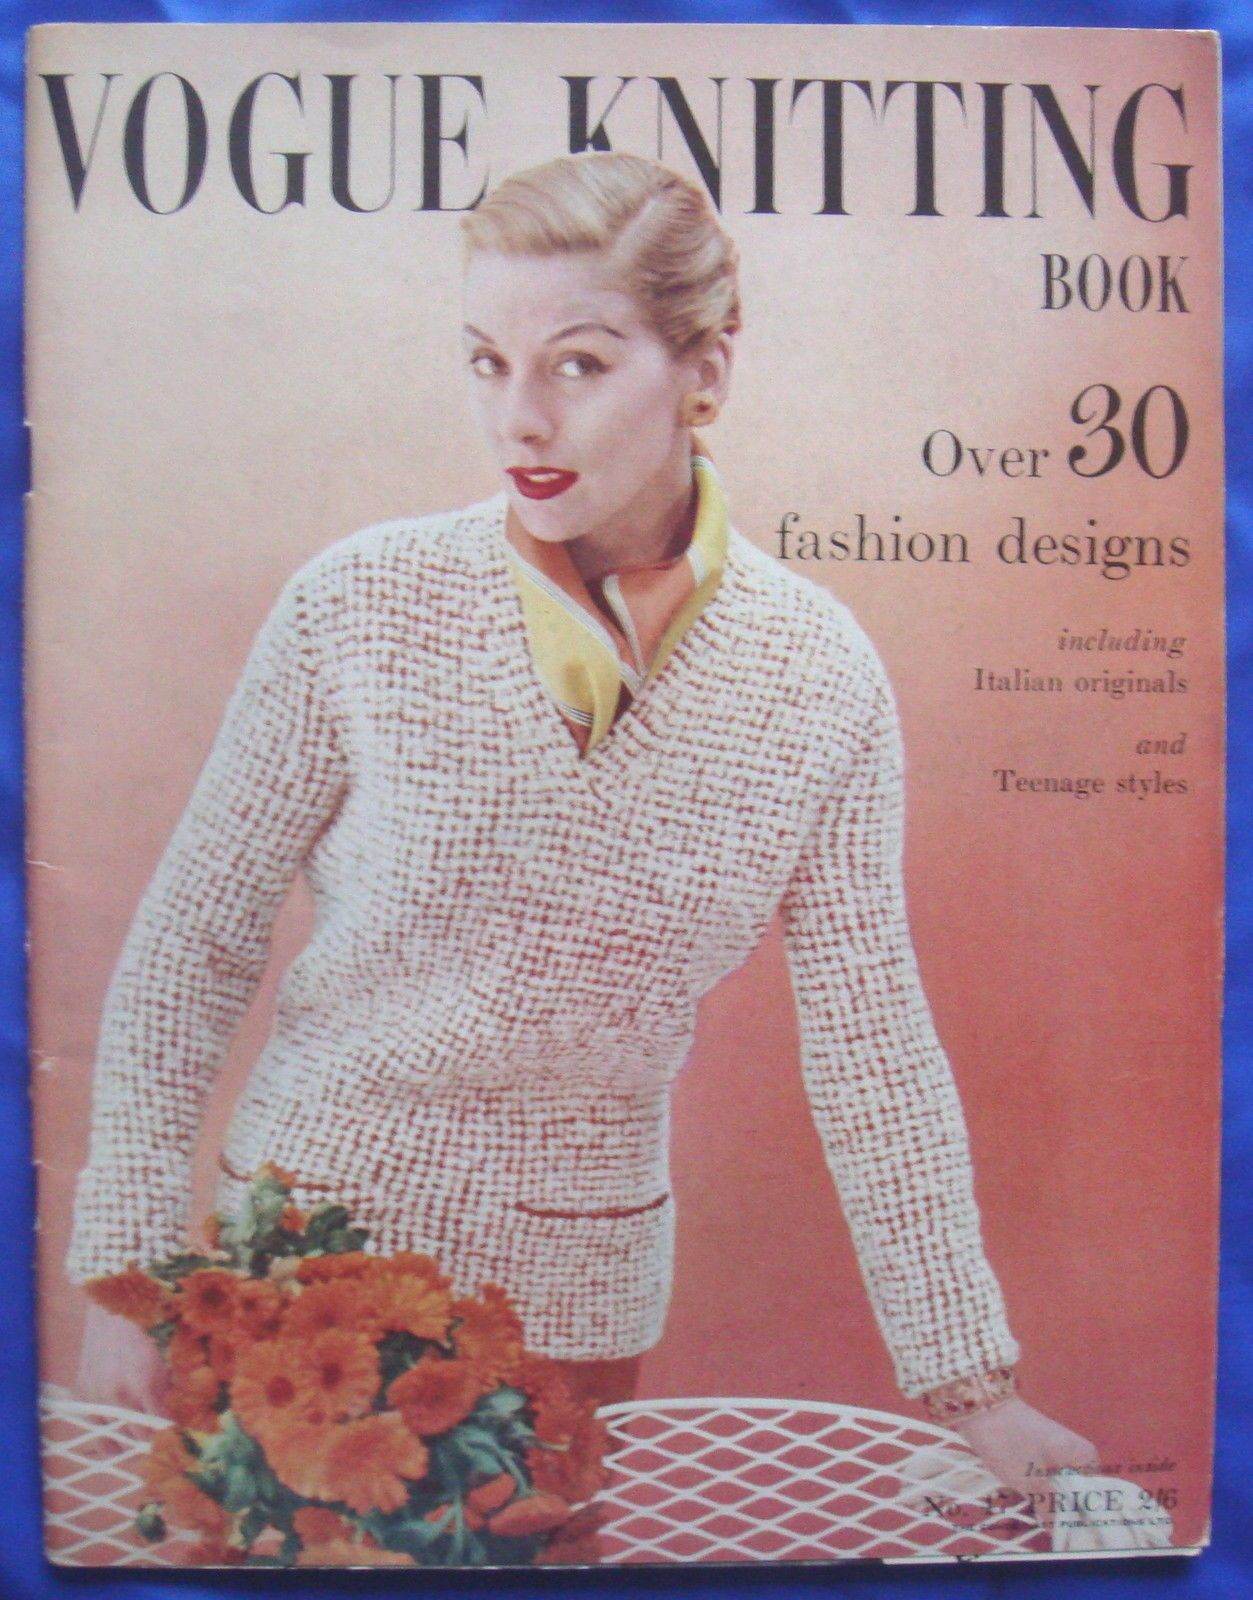 Vintage vogue knitting pattern booklet book no47 jumpercardigan vintage vogue knitting pattern booklet book no47 jumpercardigandress etc bankloansurffo Choice Image